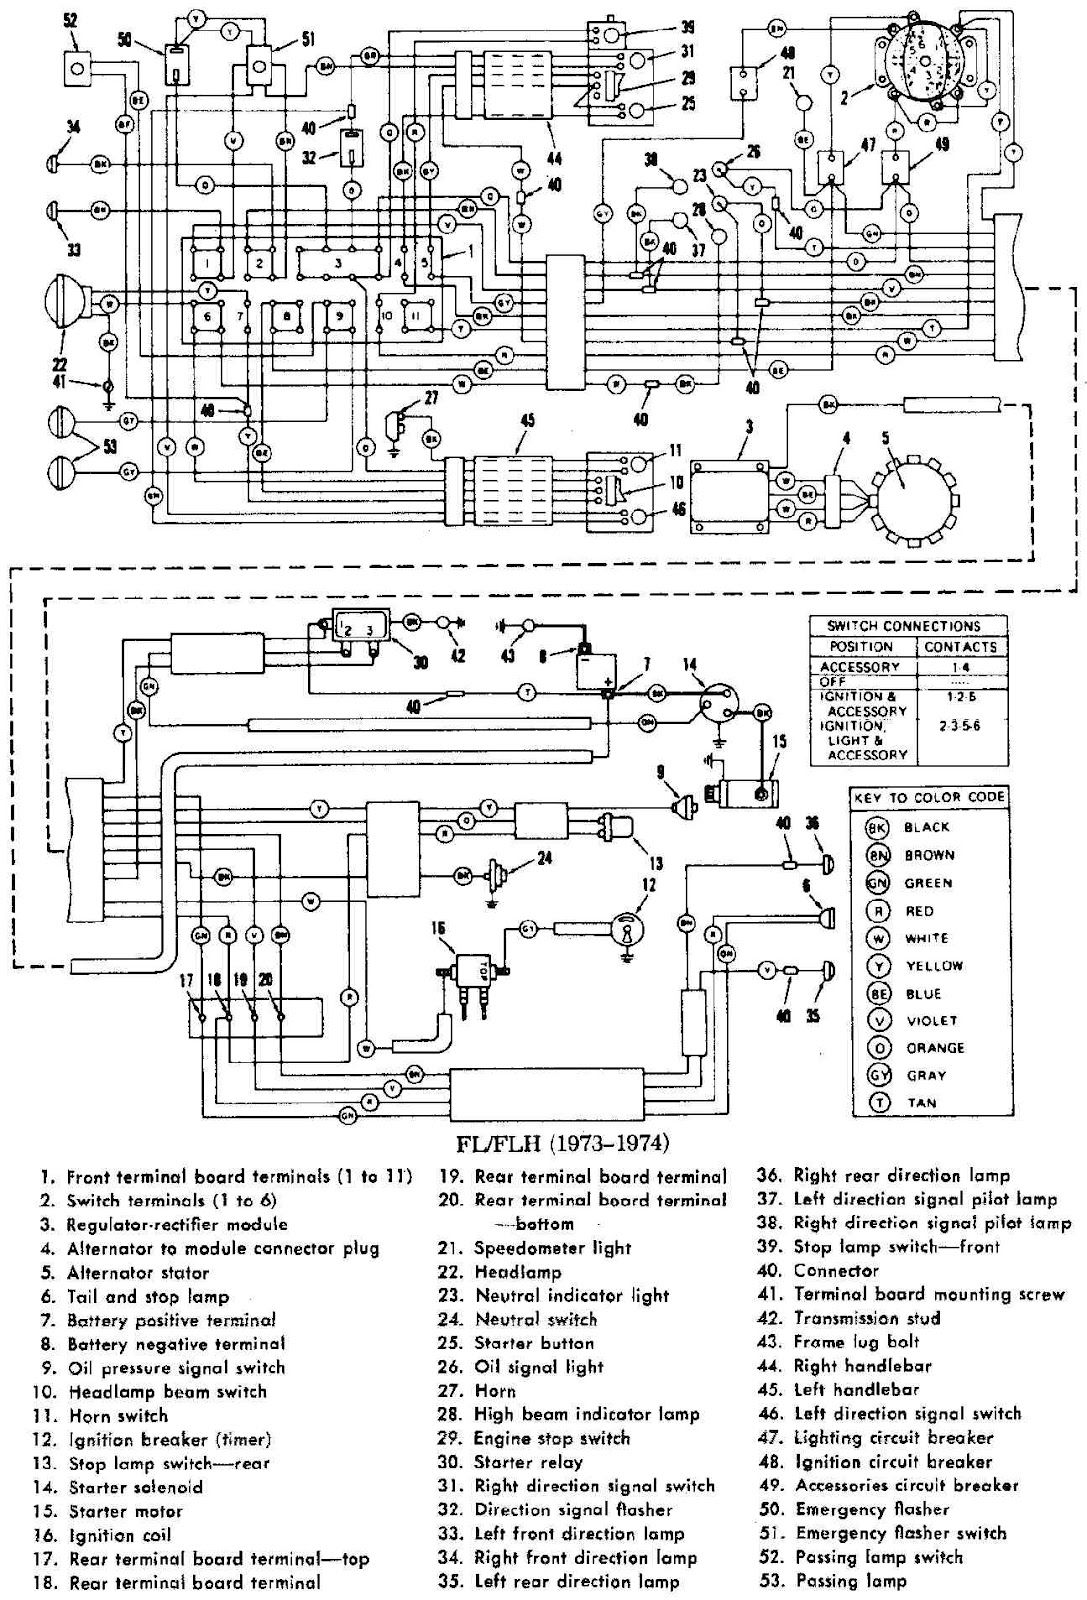 Harley Davidson Wiring Diagram Together With Harley Davidson Wiring